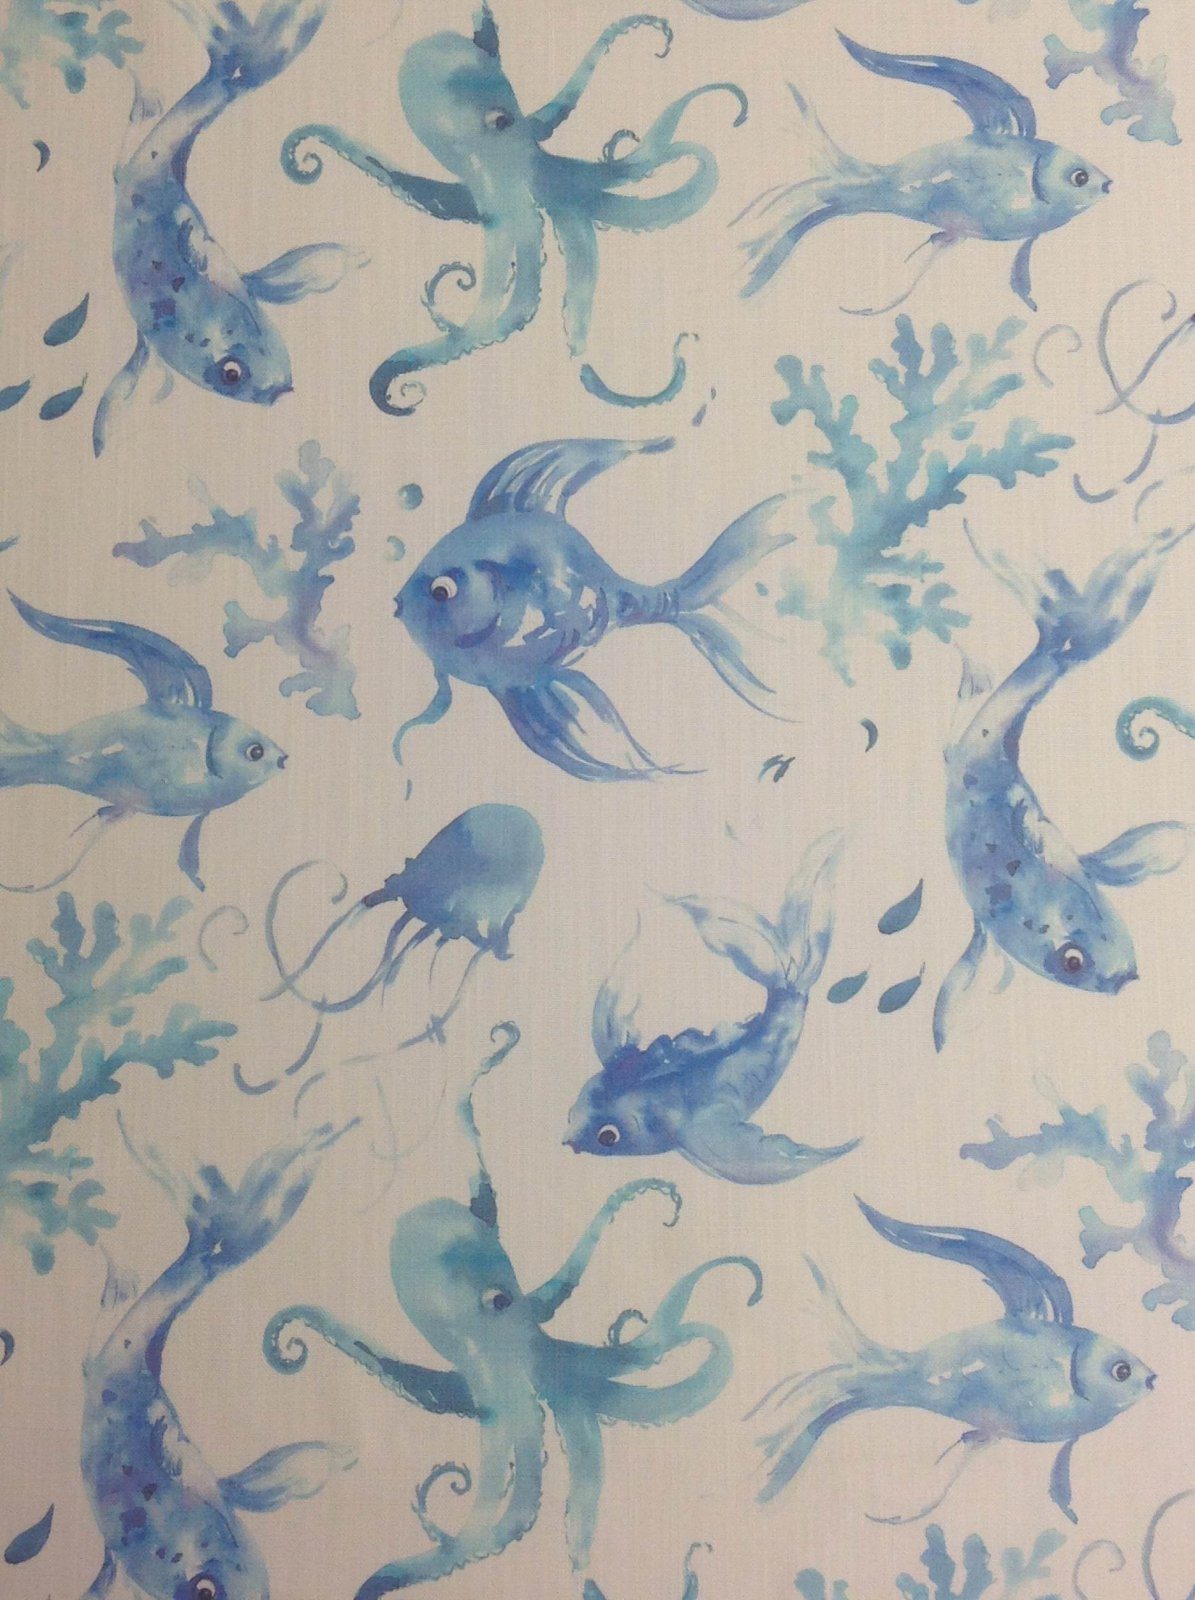 Sea Ocean Fish Octopus Marine Watercolor Painting Upholstery Home Decor Fabric Sold by the Piece! Out of Print! HM119